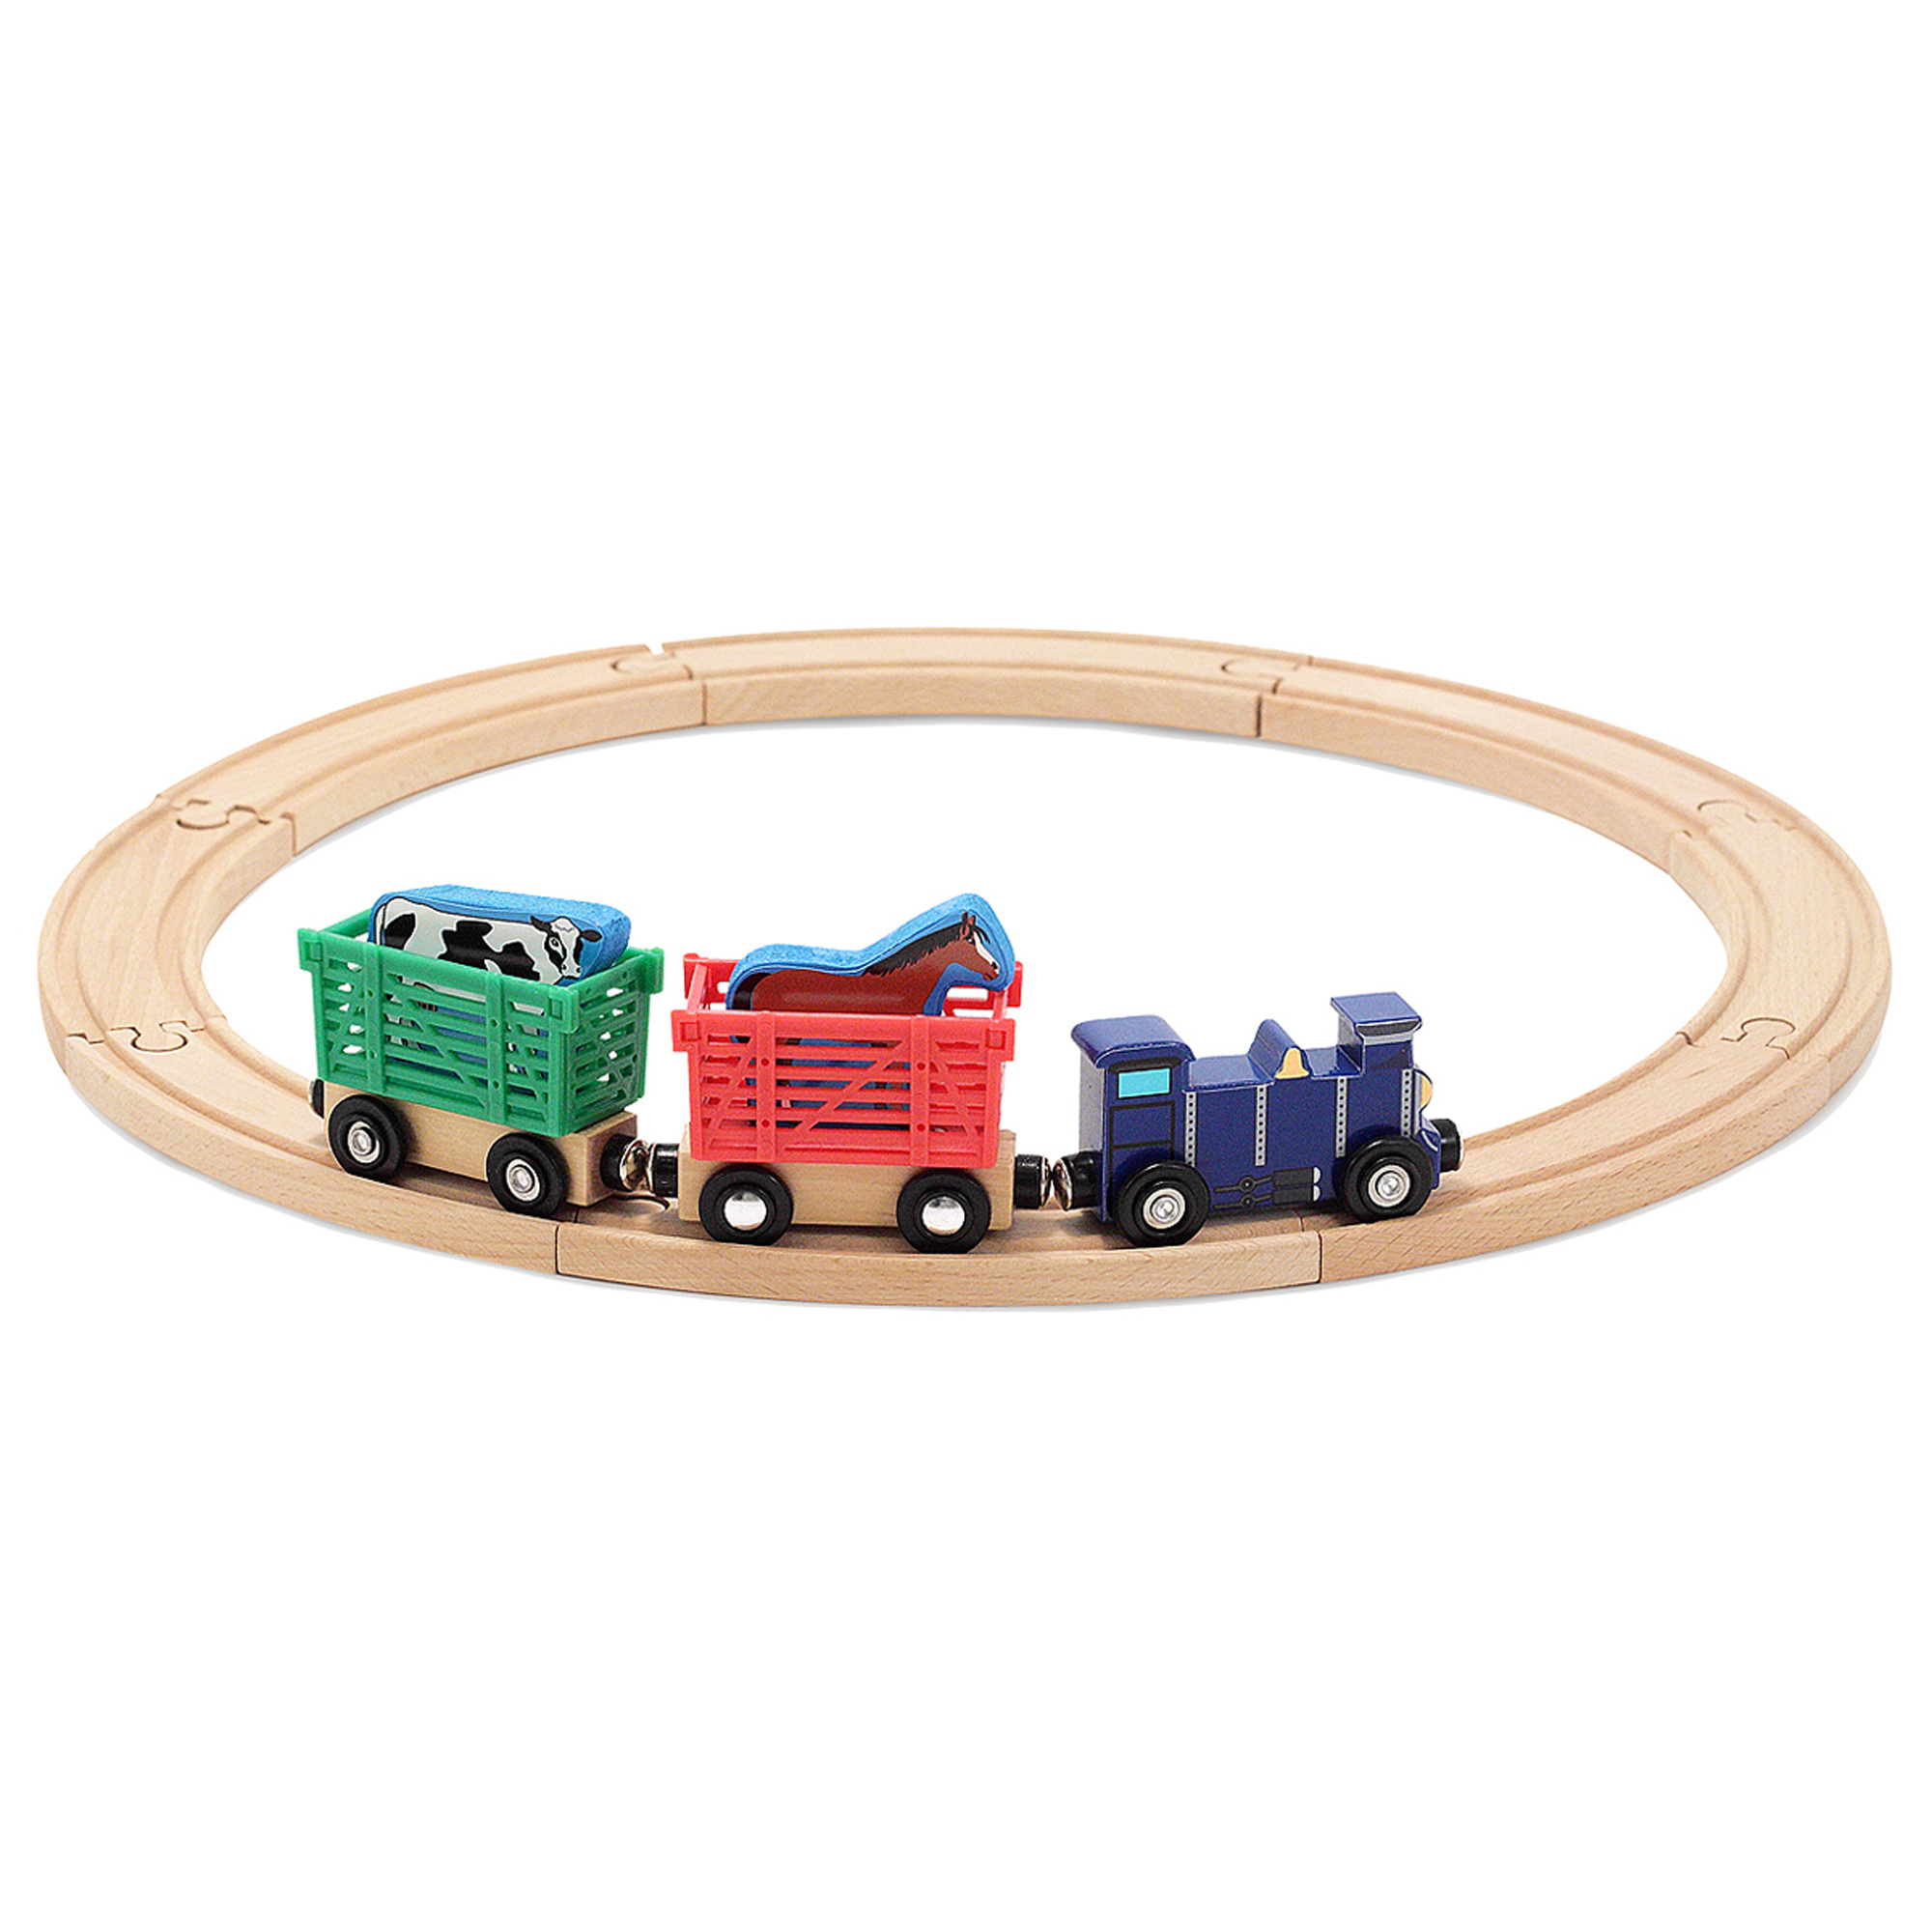 Farm Animal Train Set 644